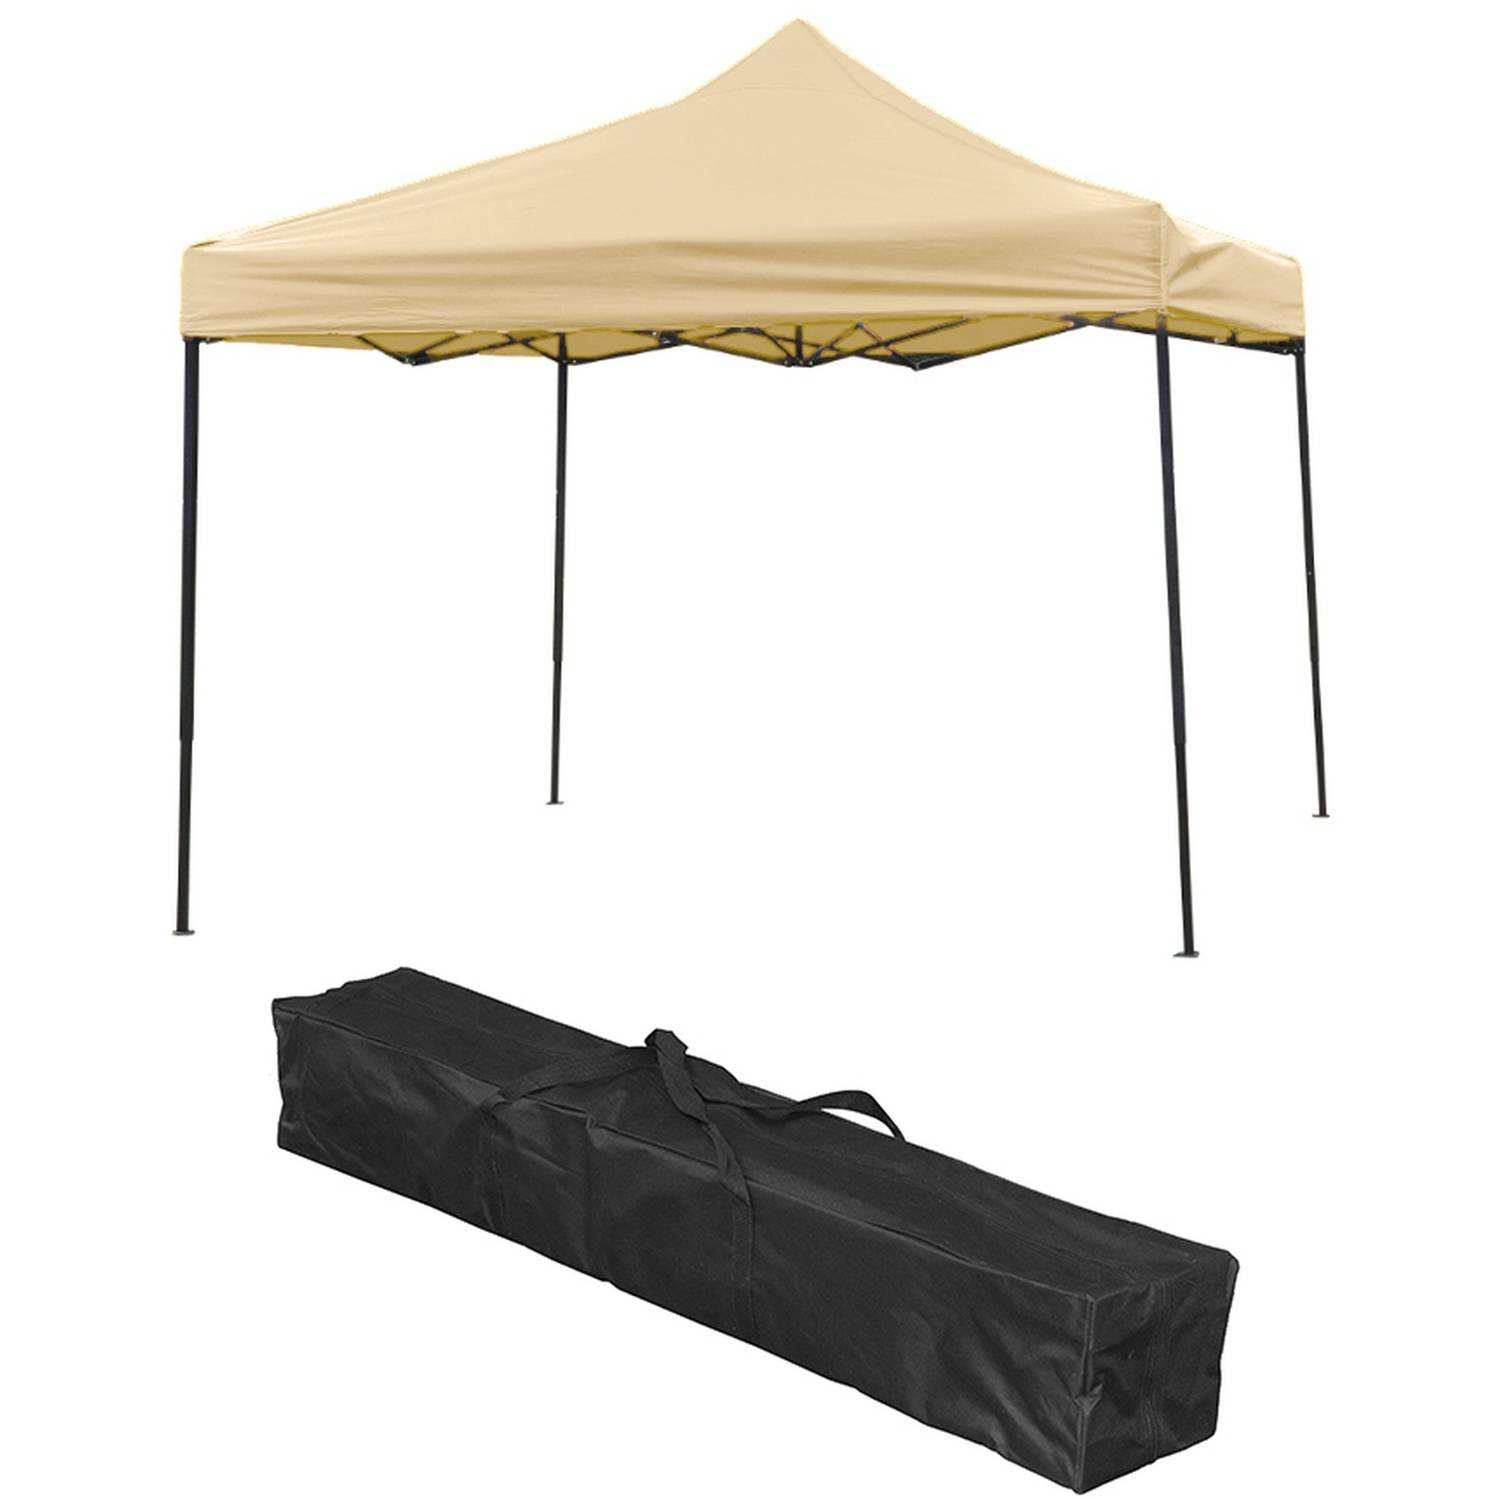 Lightweight and Portable Canopy Tent Set, 10' x 10', By Trademark Innovations